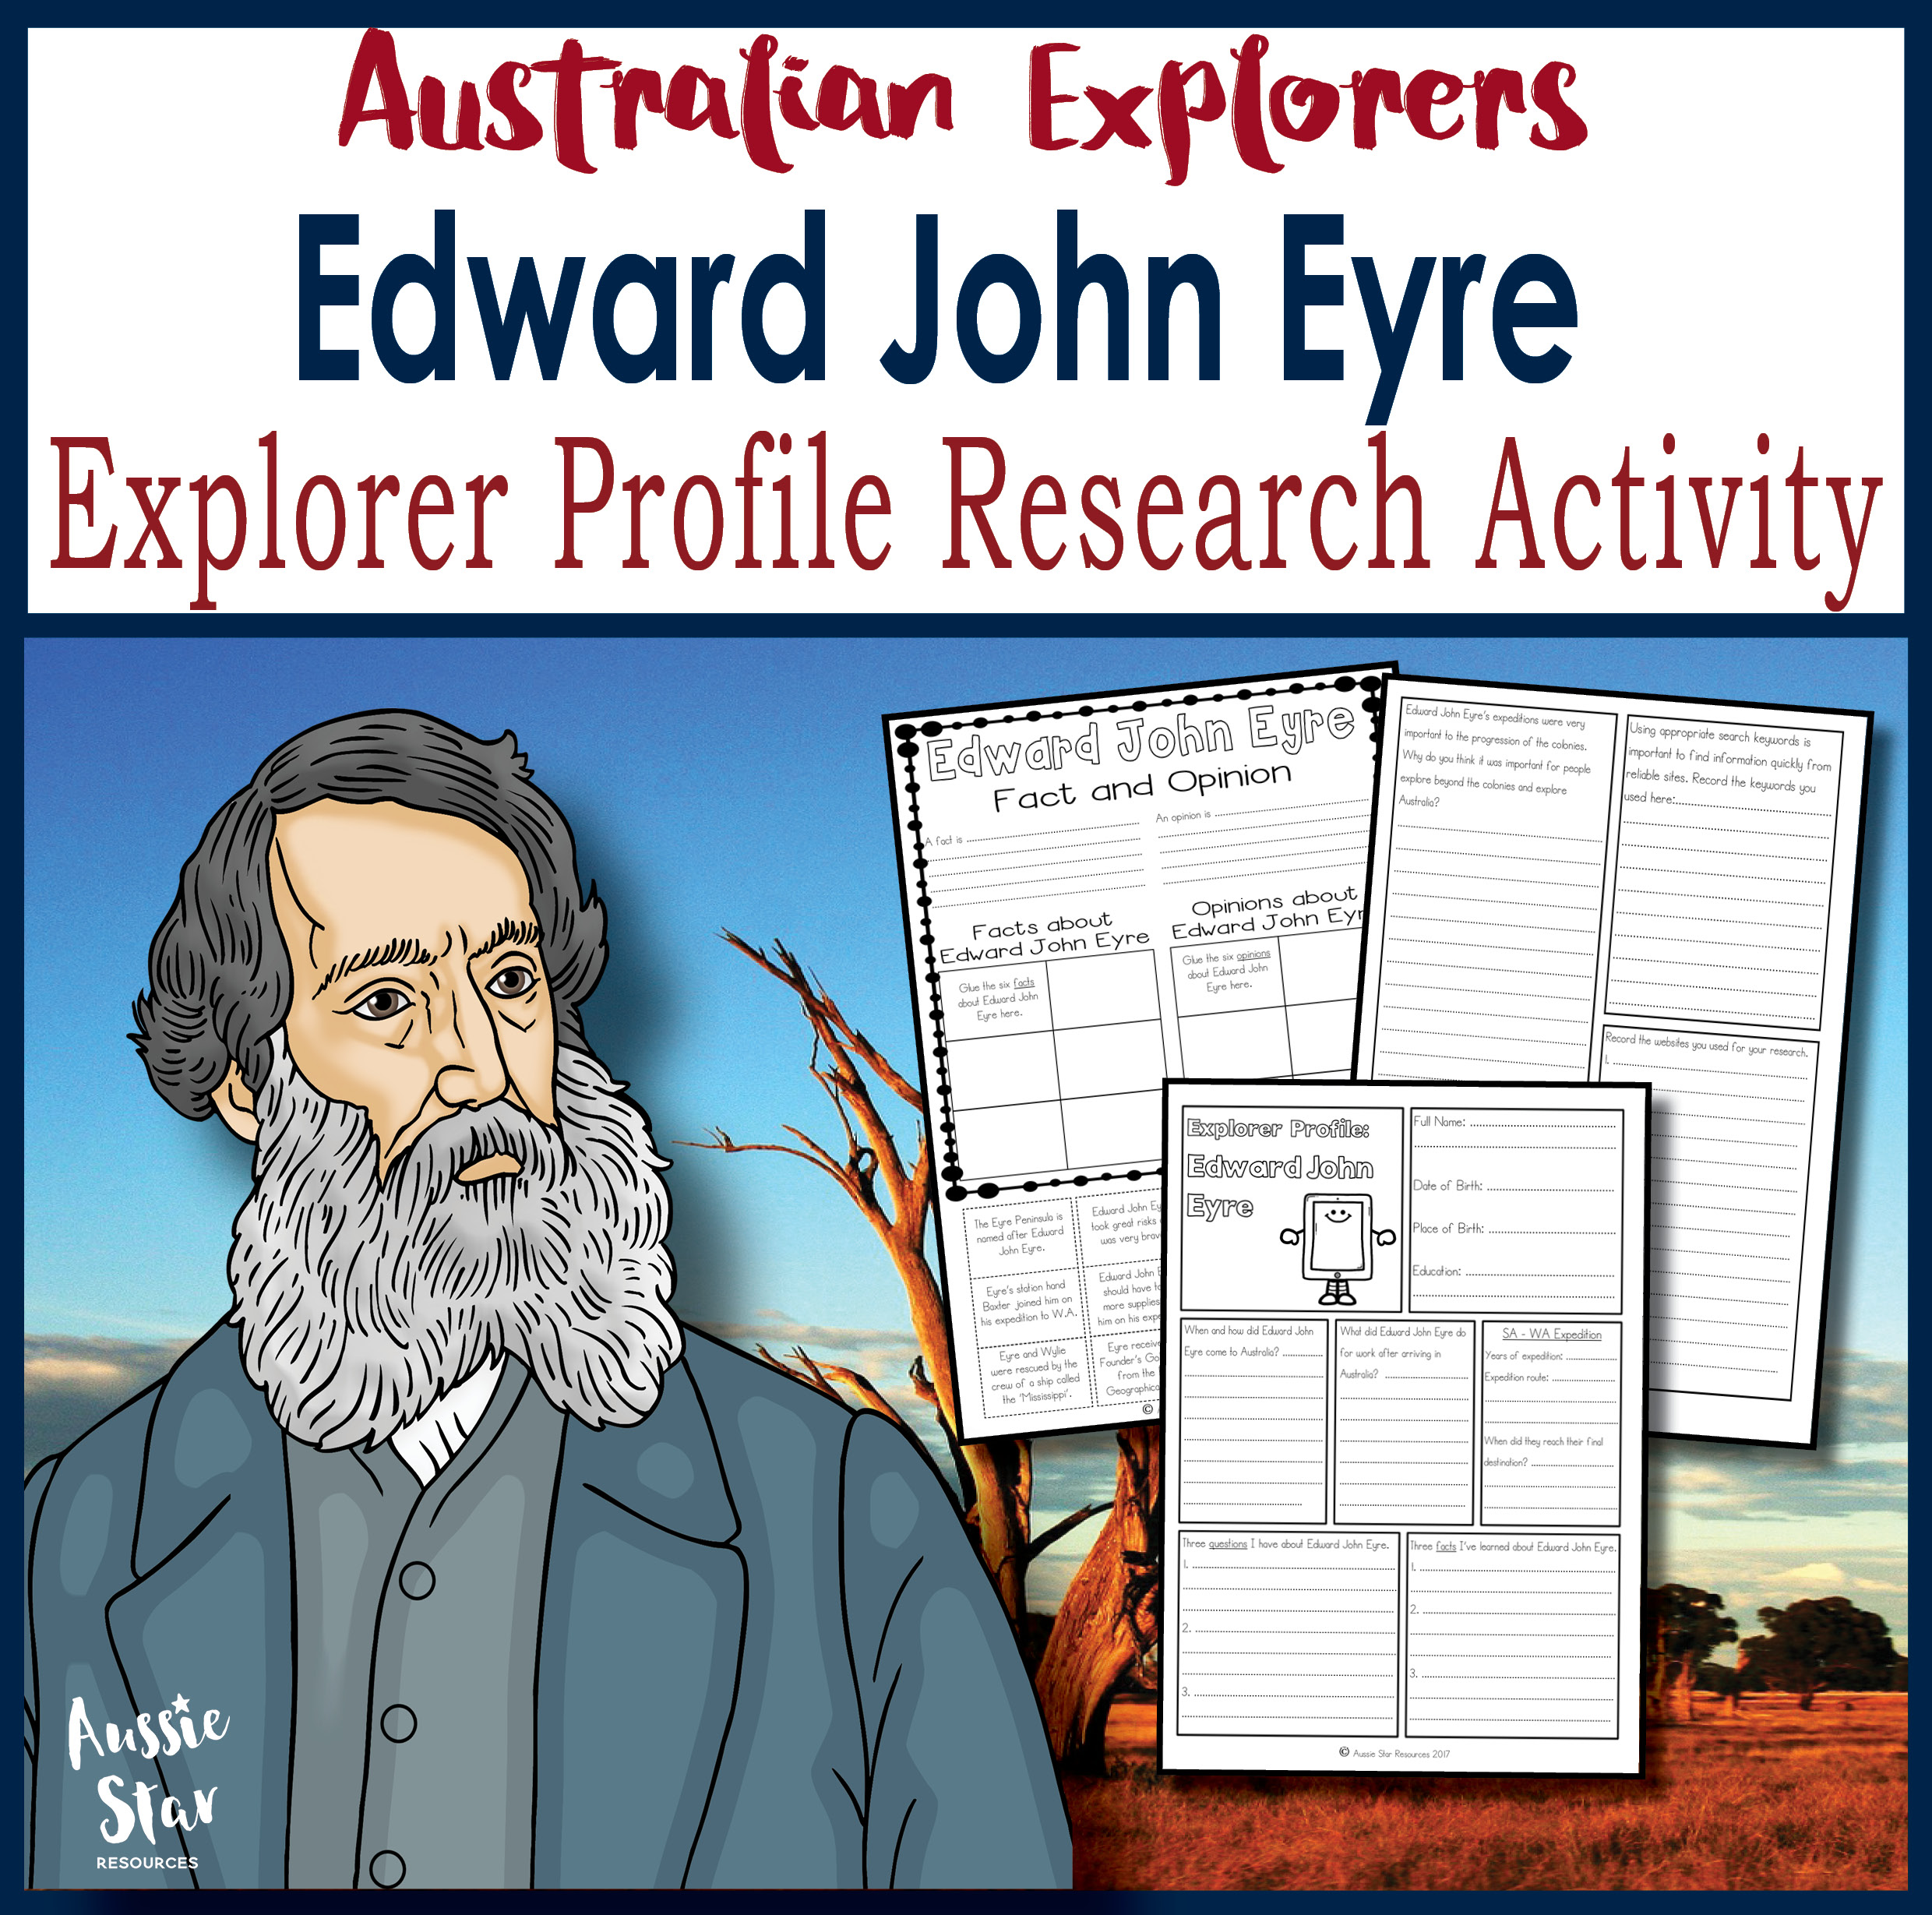 Edward John Eyre Research Profile Activity